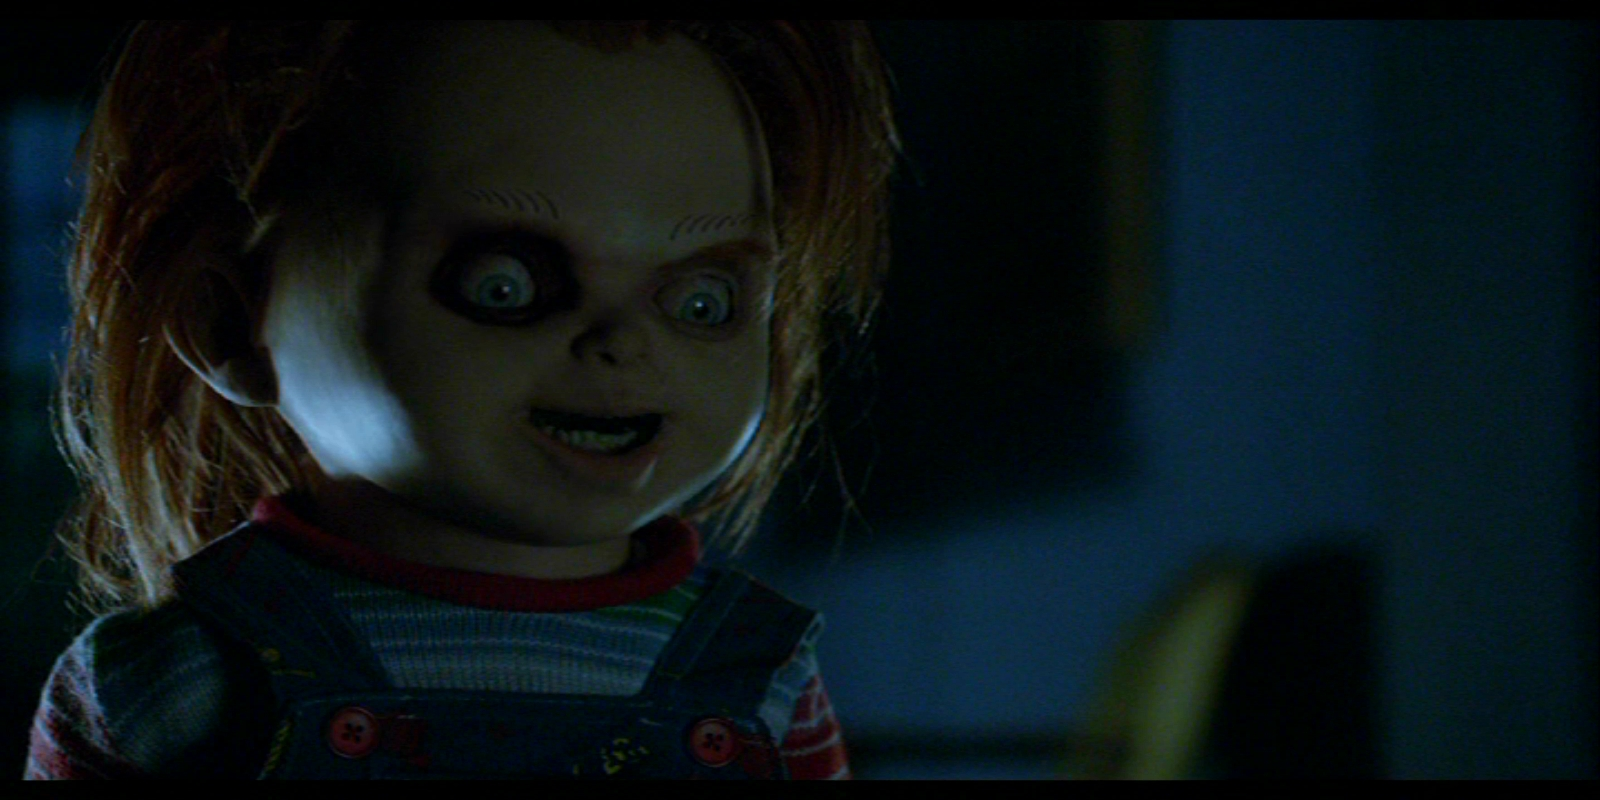 Wallpaper Chucky 3d Curse Of Chucky Wallpaper And Background Image 1600x800